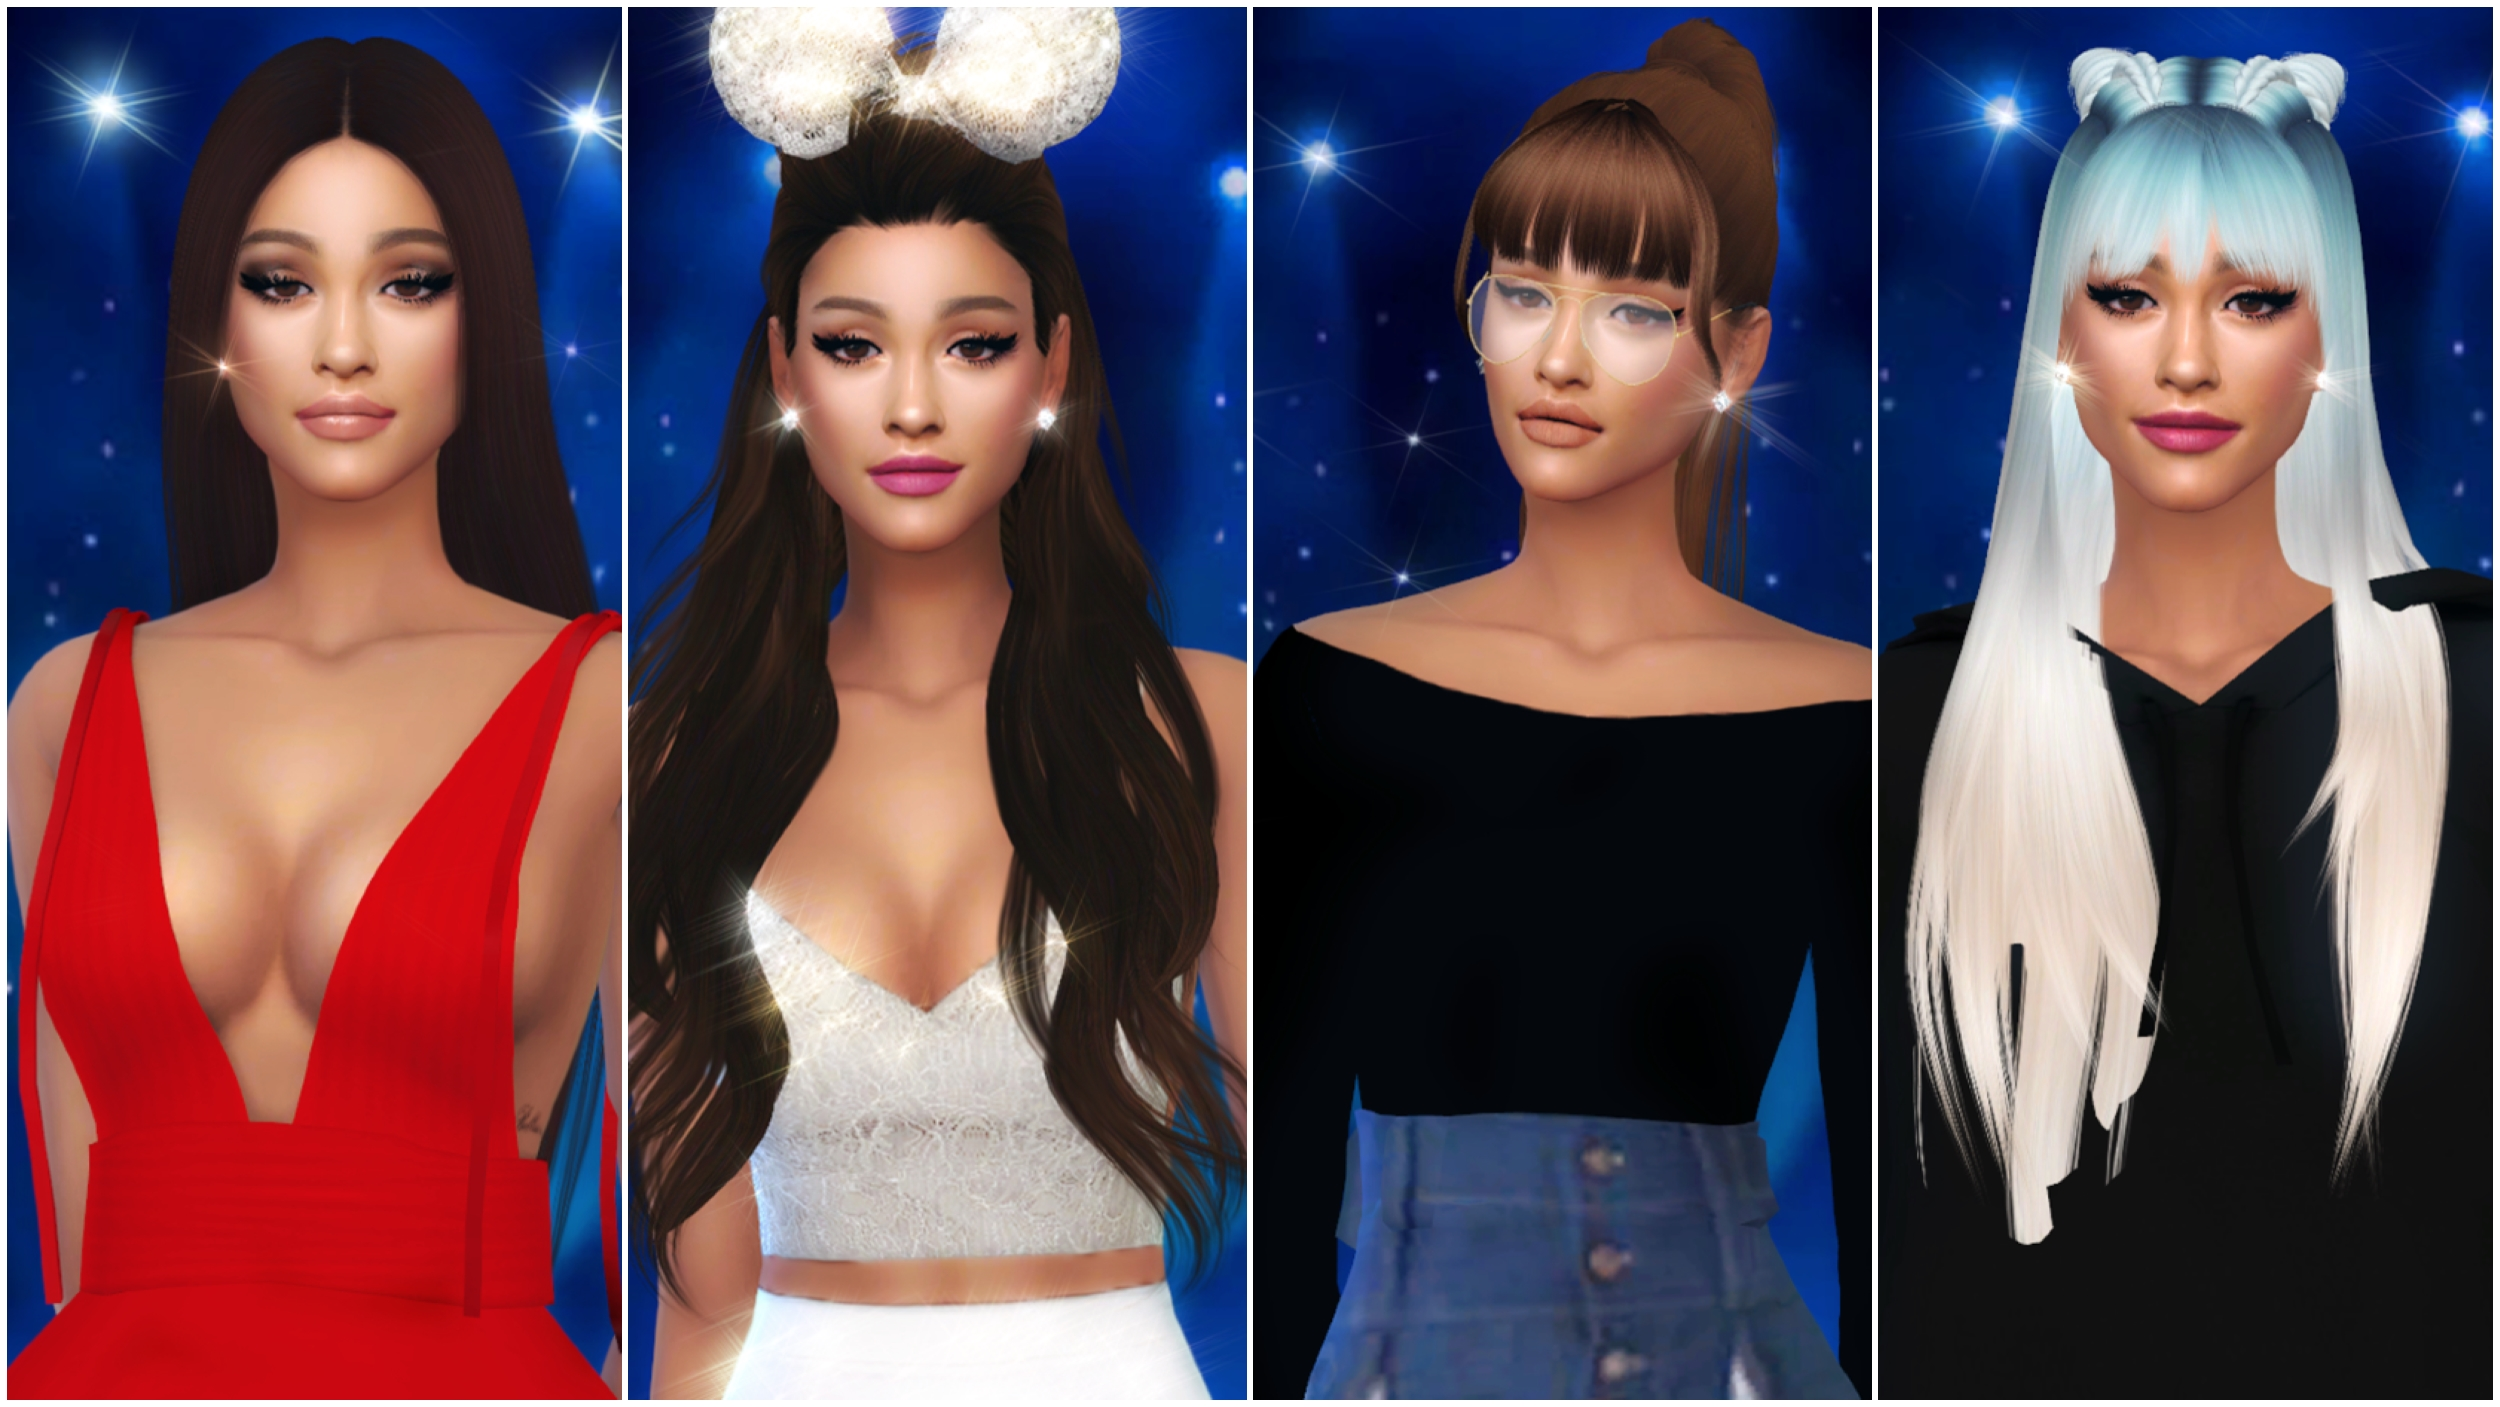 The Sims 4 I Create a Sim I ARIANA GRANDE ♡